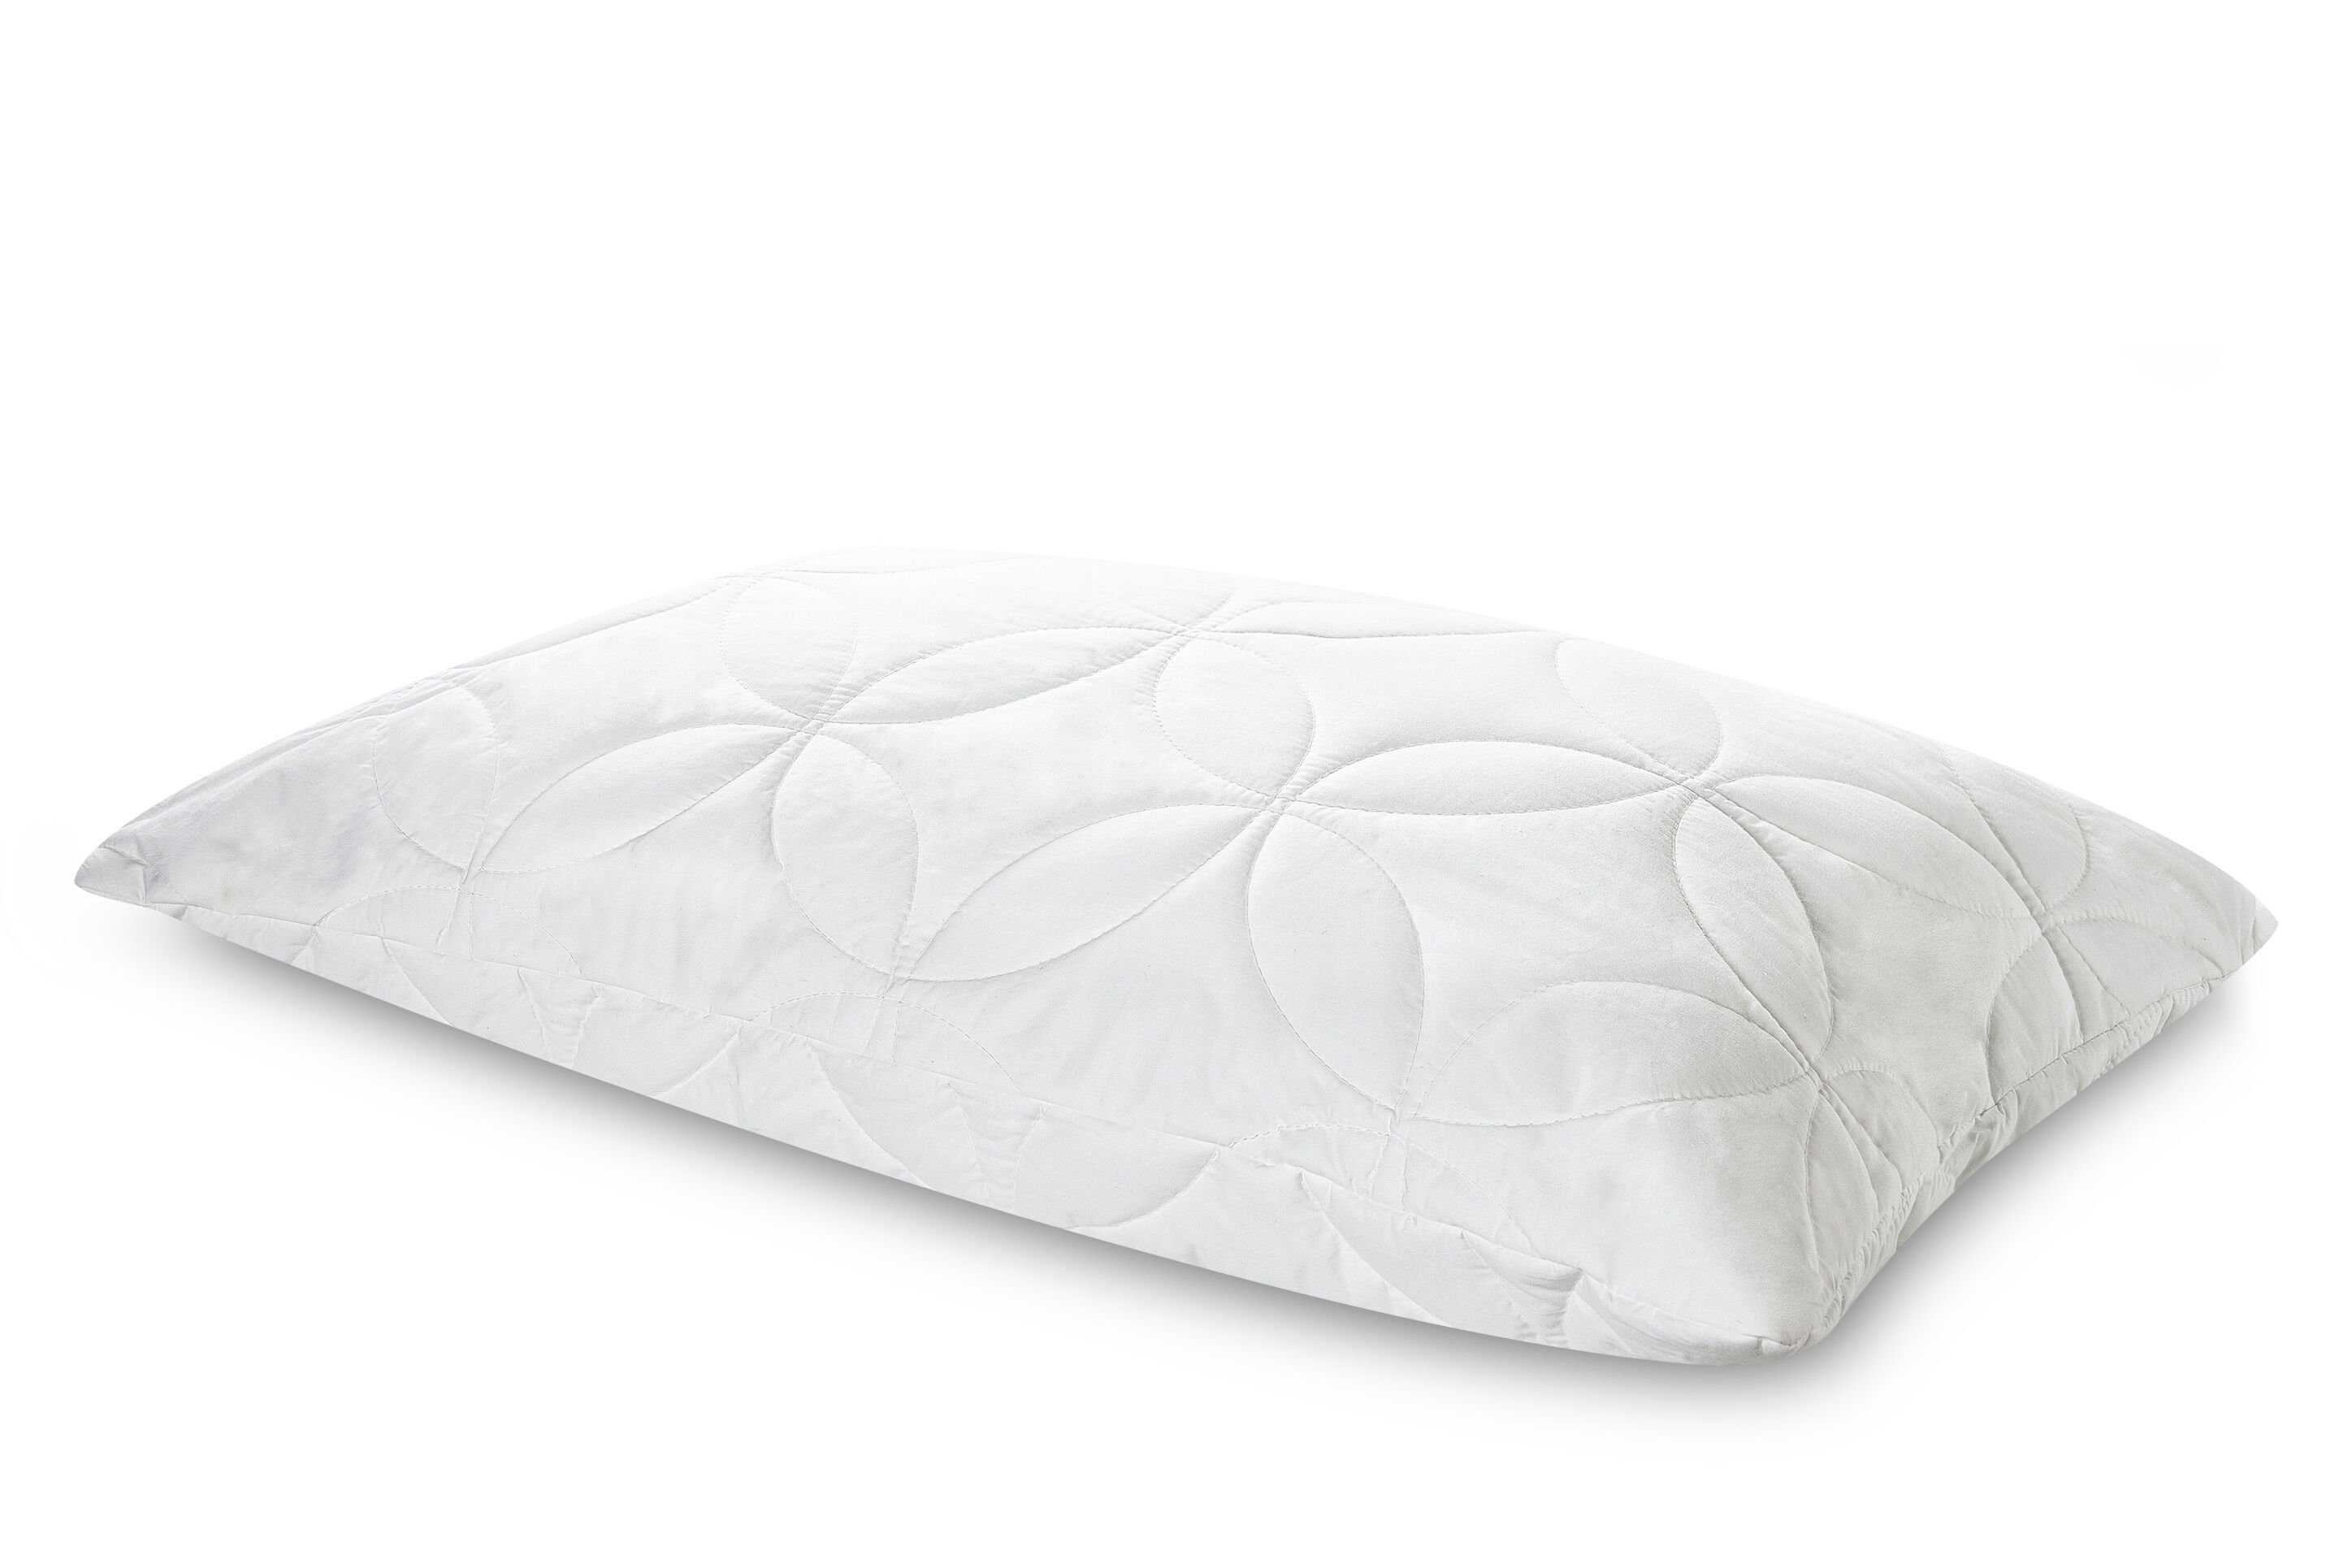 tempurpedic tempurcloud softlofty pillow - Tempurpedic Pillows